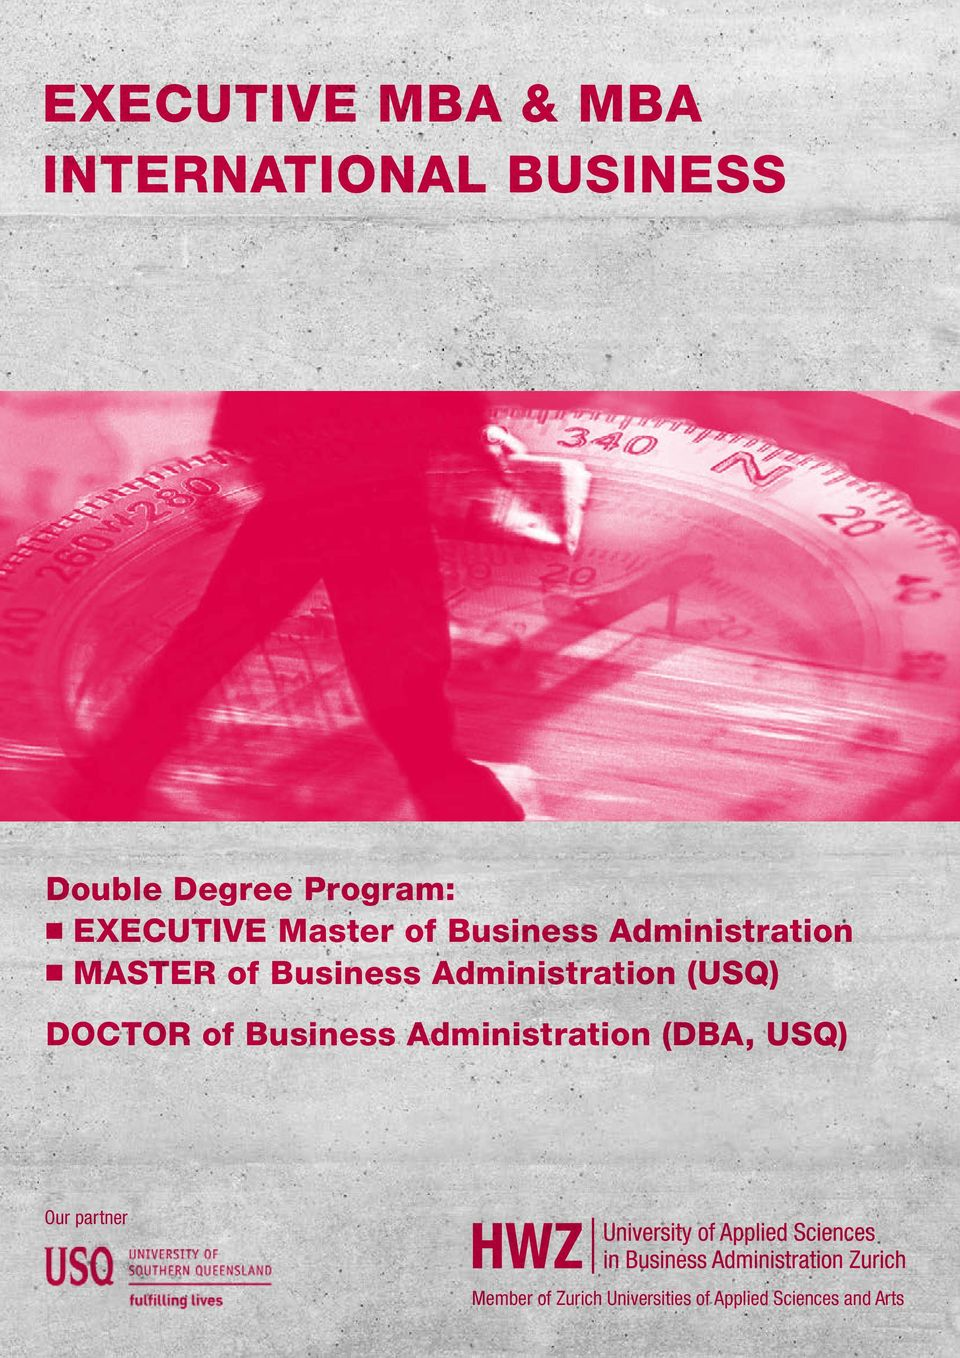 Administration (USQ) DOCTOR of Business Administration (DBA, USQ)